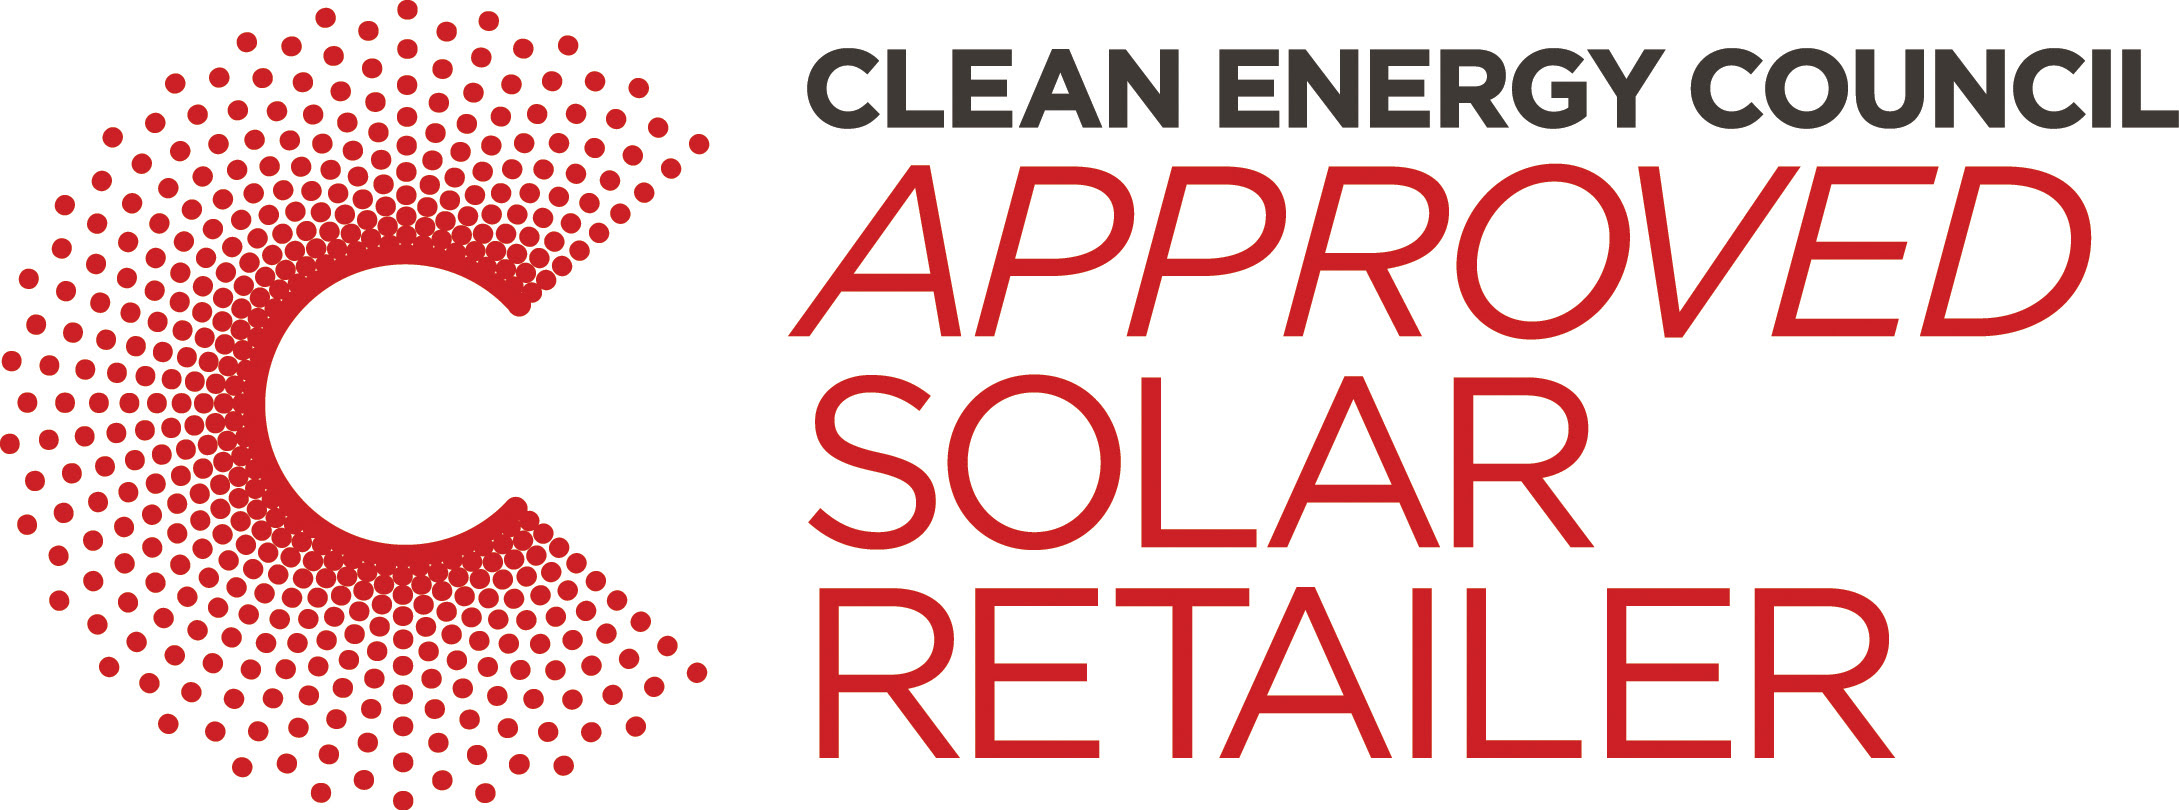 Clean Energy Council Approved Solar Retailer Badge with white background